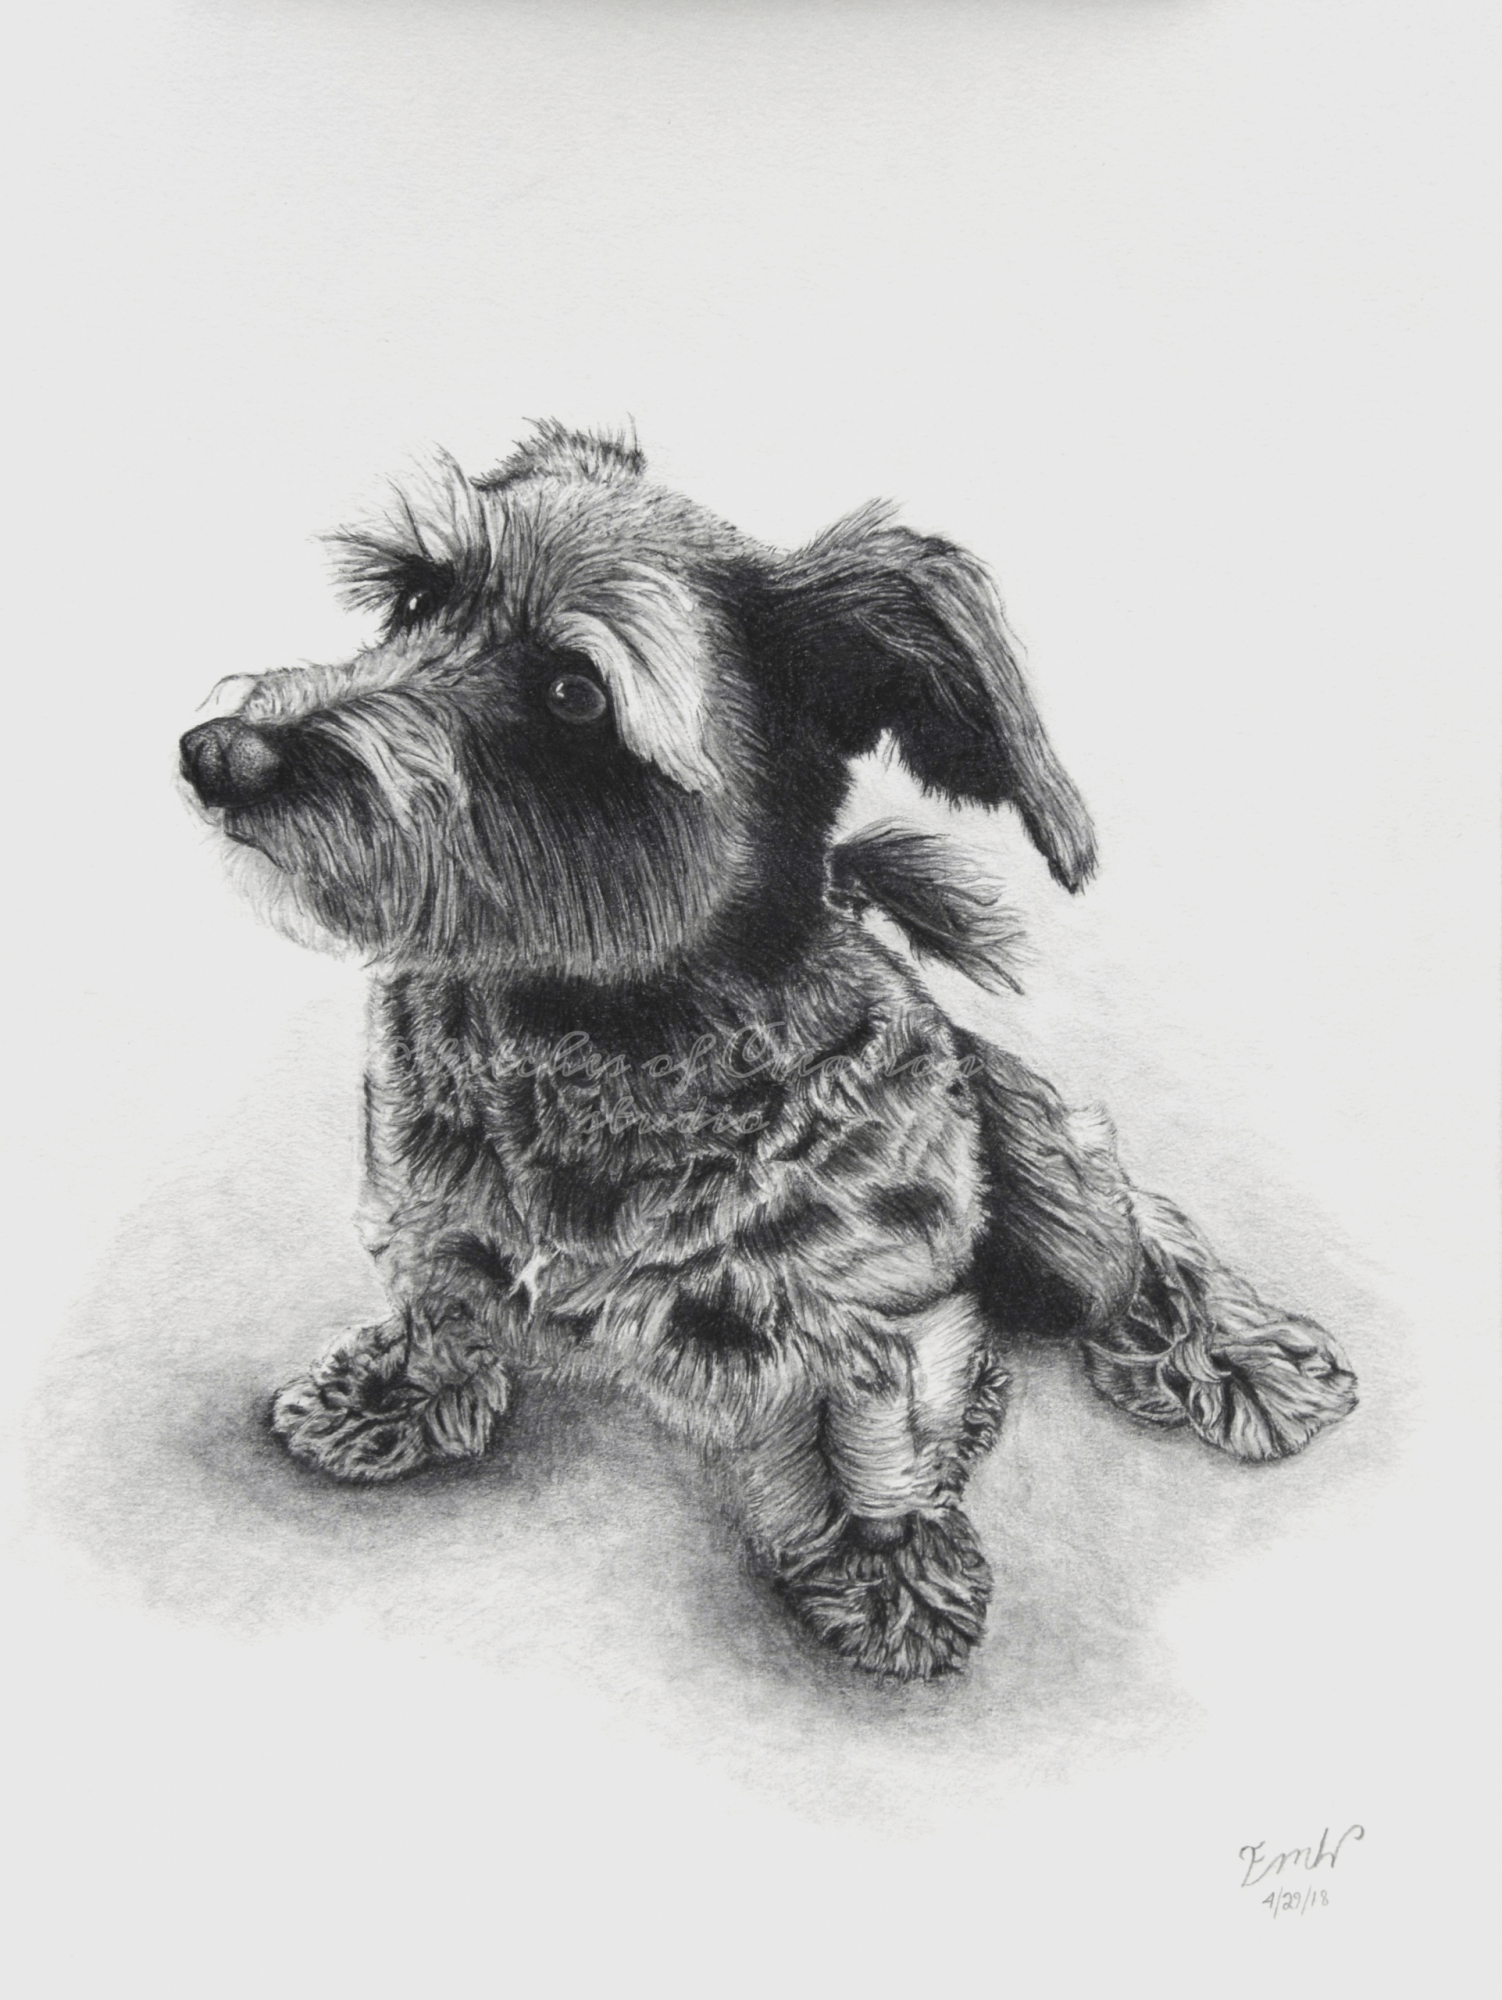 'Susie' a drawing of a terrier mix. 9x12 inches. Completed April 2018